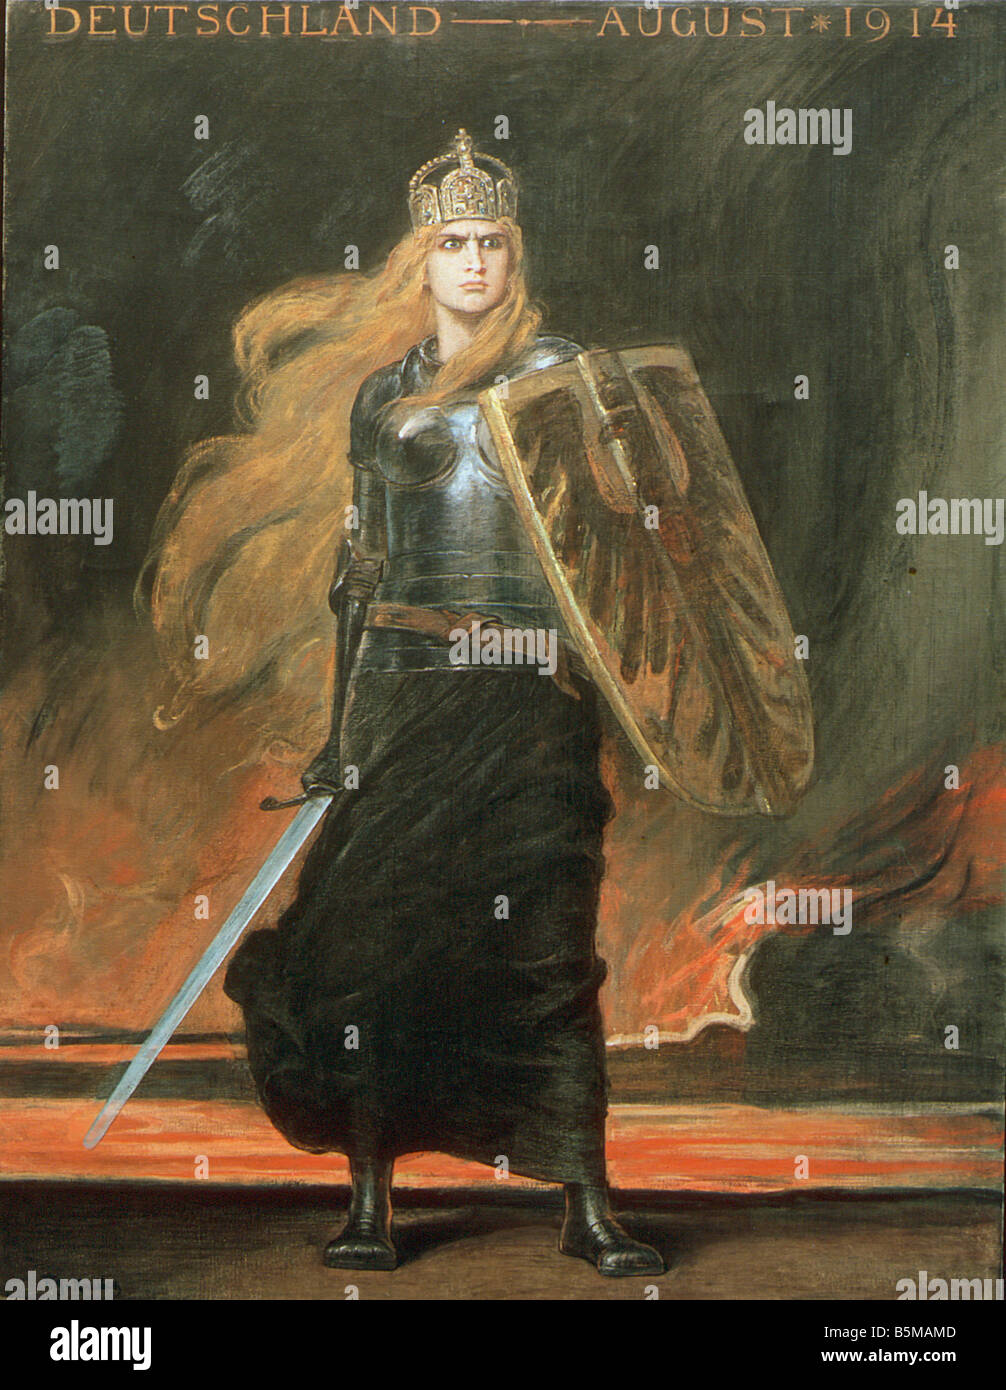 2 G75 G1 1914 1 B E Germania F A Kaulbach History Germania Germany August 1914 Painting 1914 by Friedrich August Stock Photo